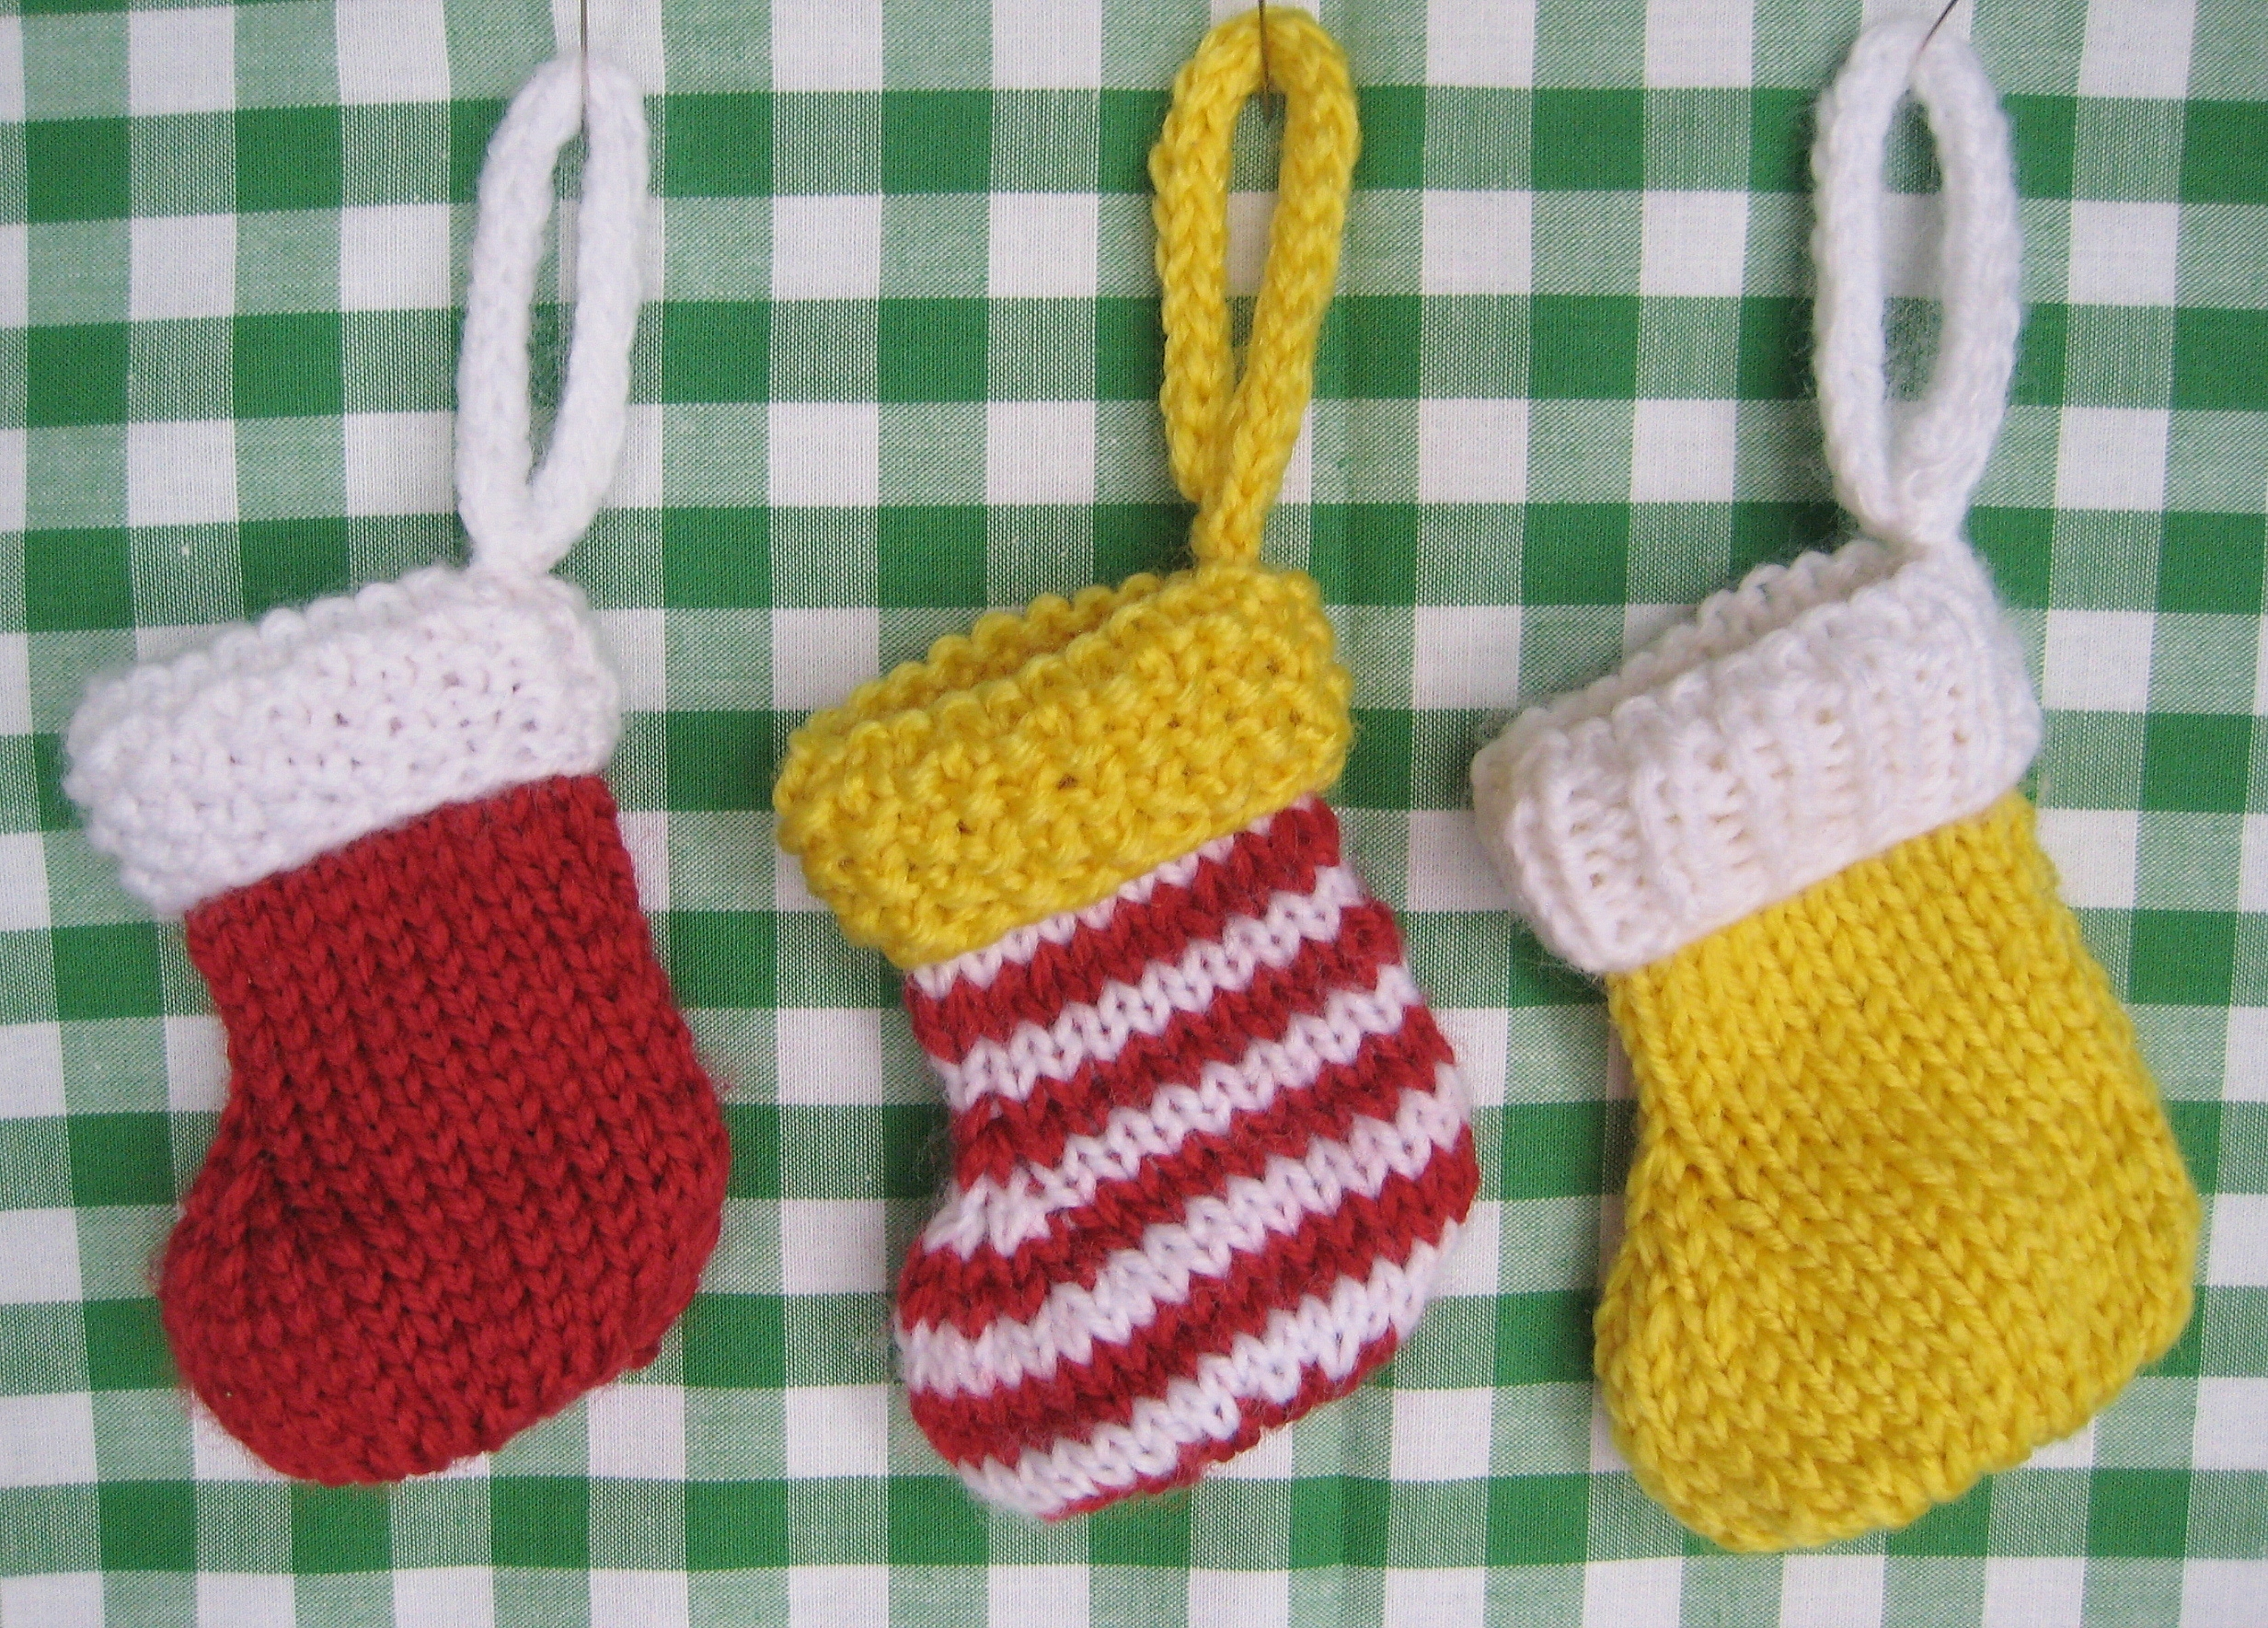 Classy knit christmas stockings with multicolorful christmas stocking and fireplace at chistmas day interior design